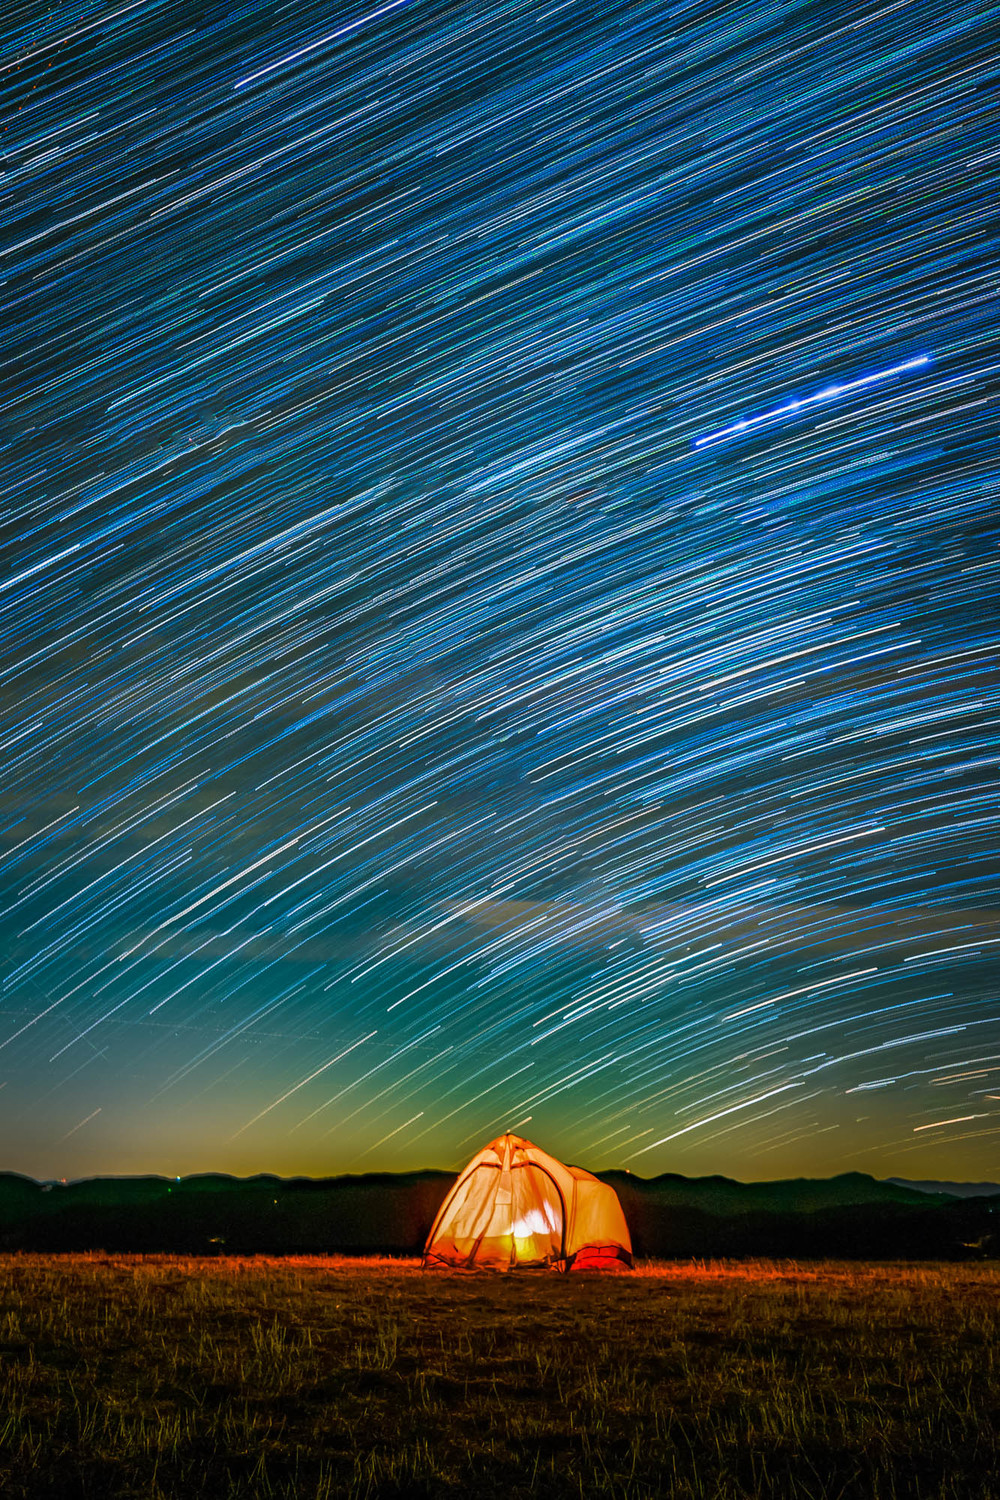 Star trails over our tent in the Smokies. Time for the next park! Onward...